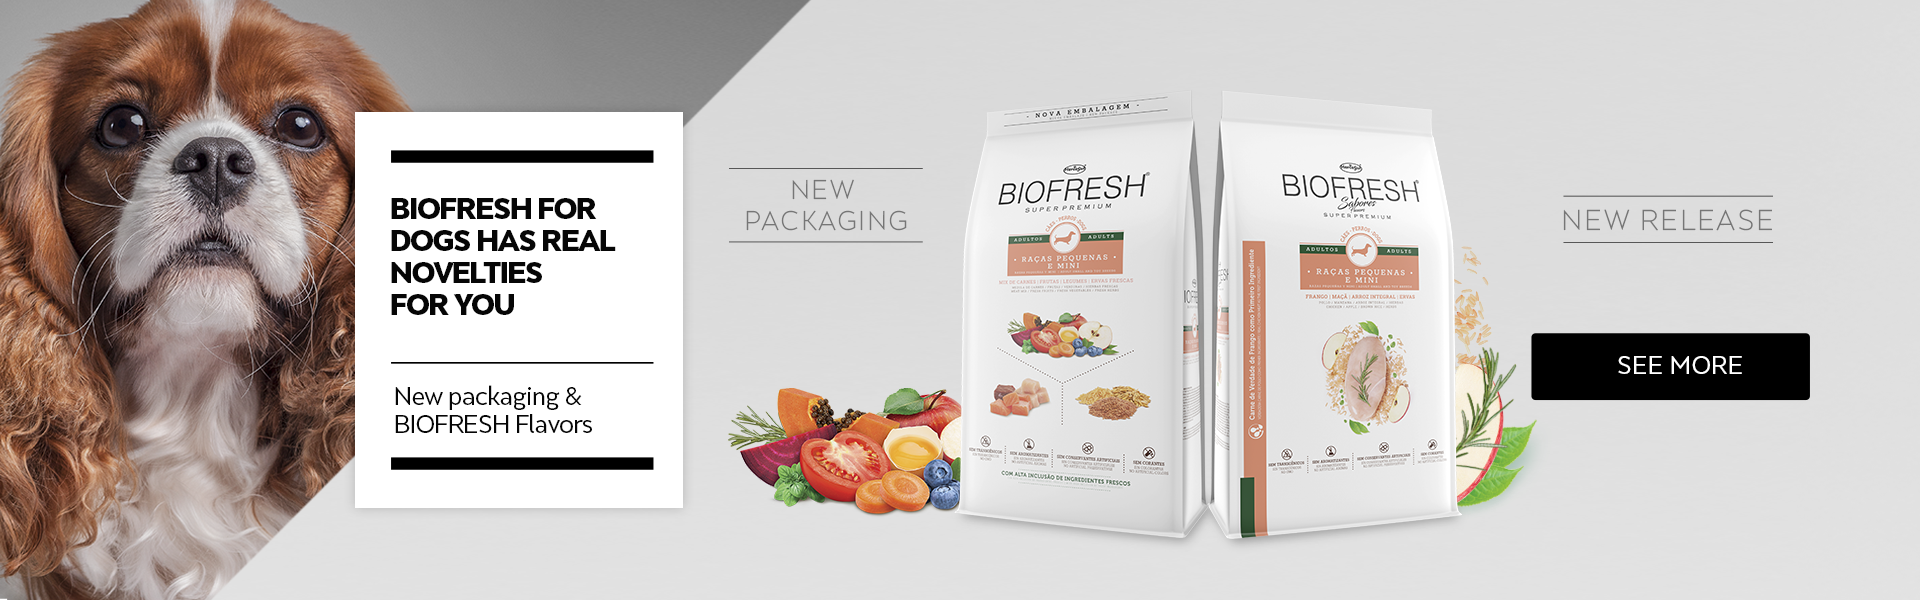 Biofresh for Dogs